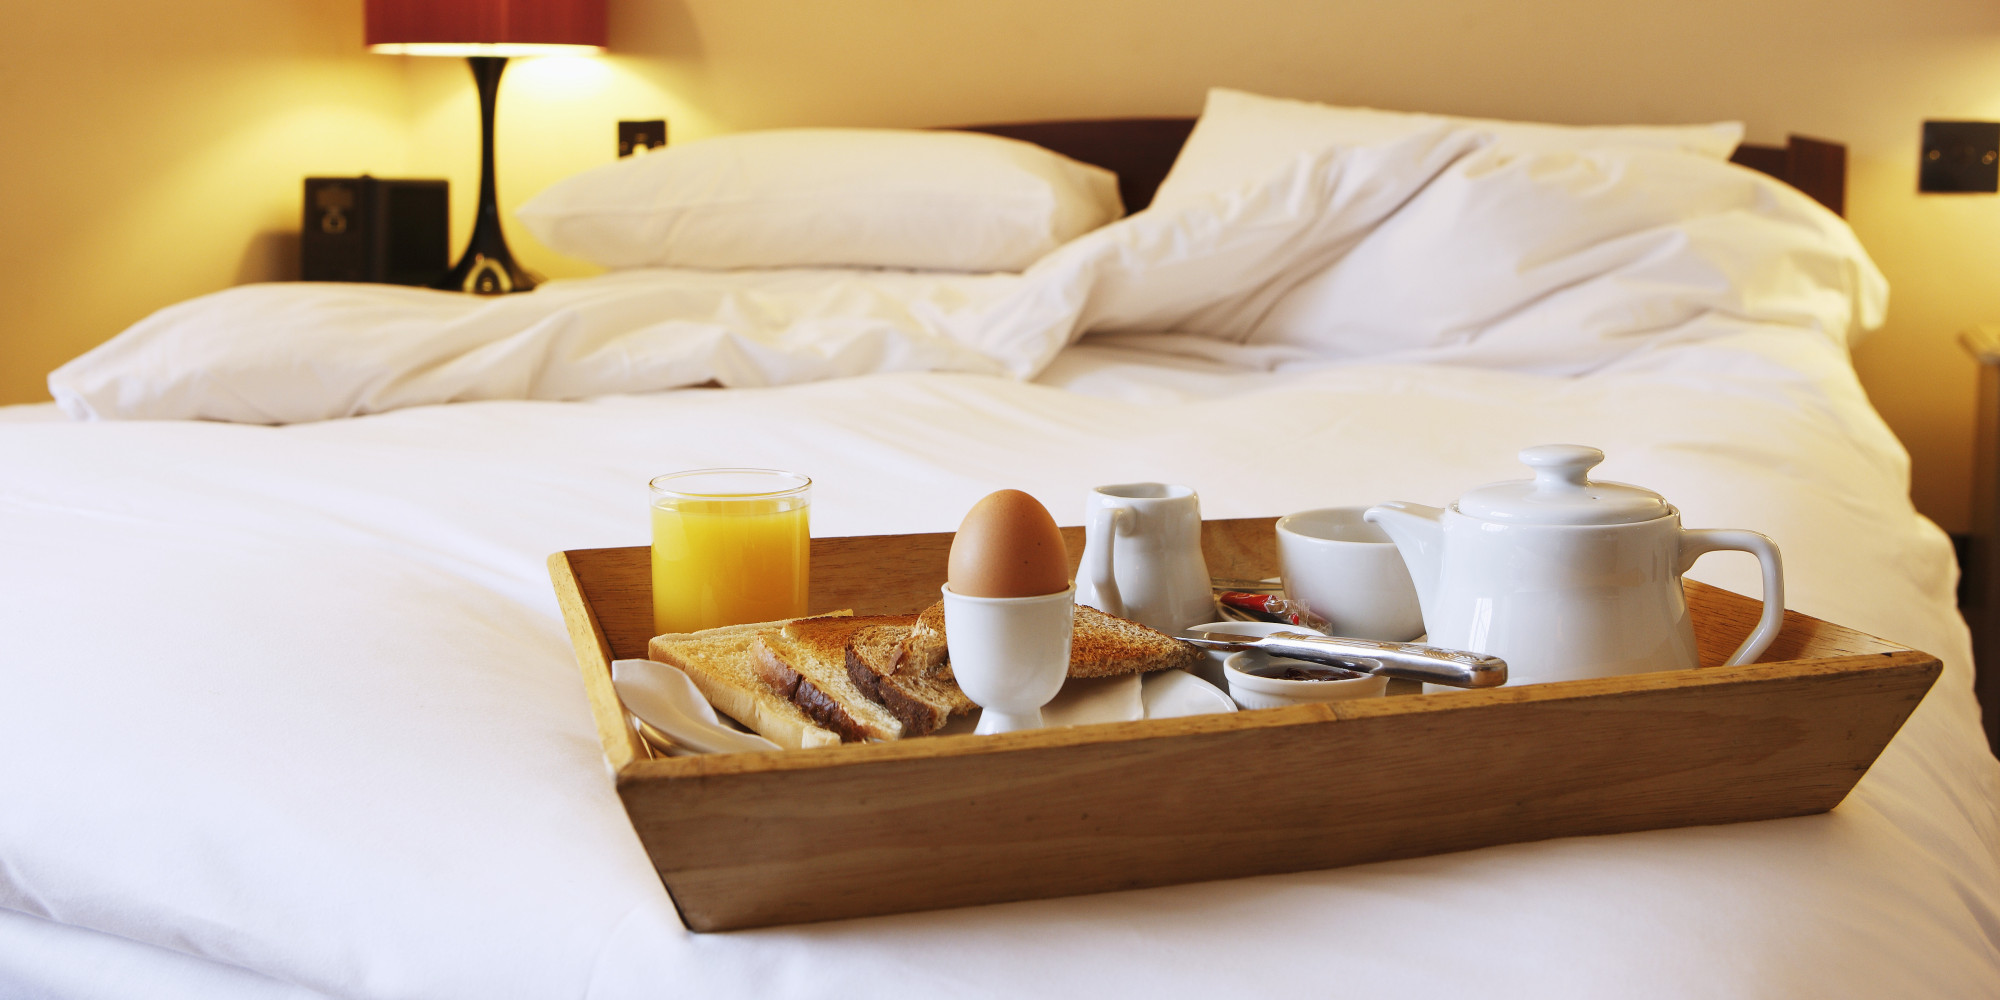 Hotels With Room Service Near Me – Home Image Ideas